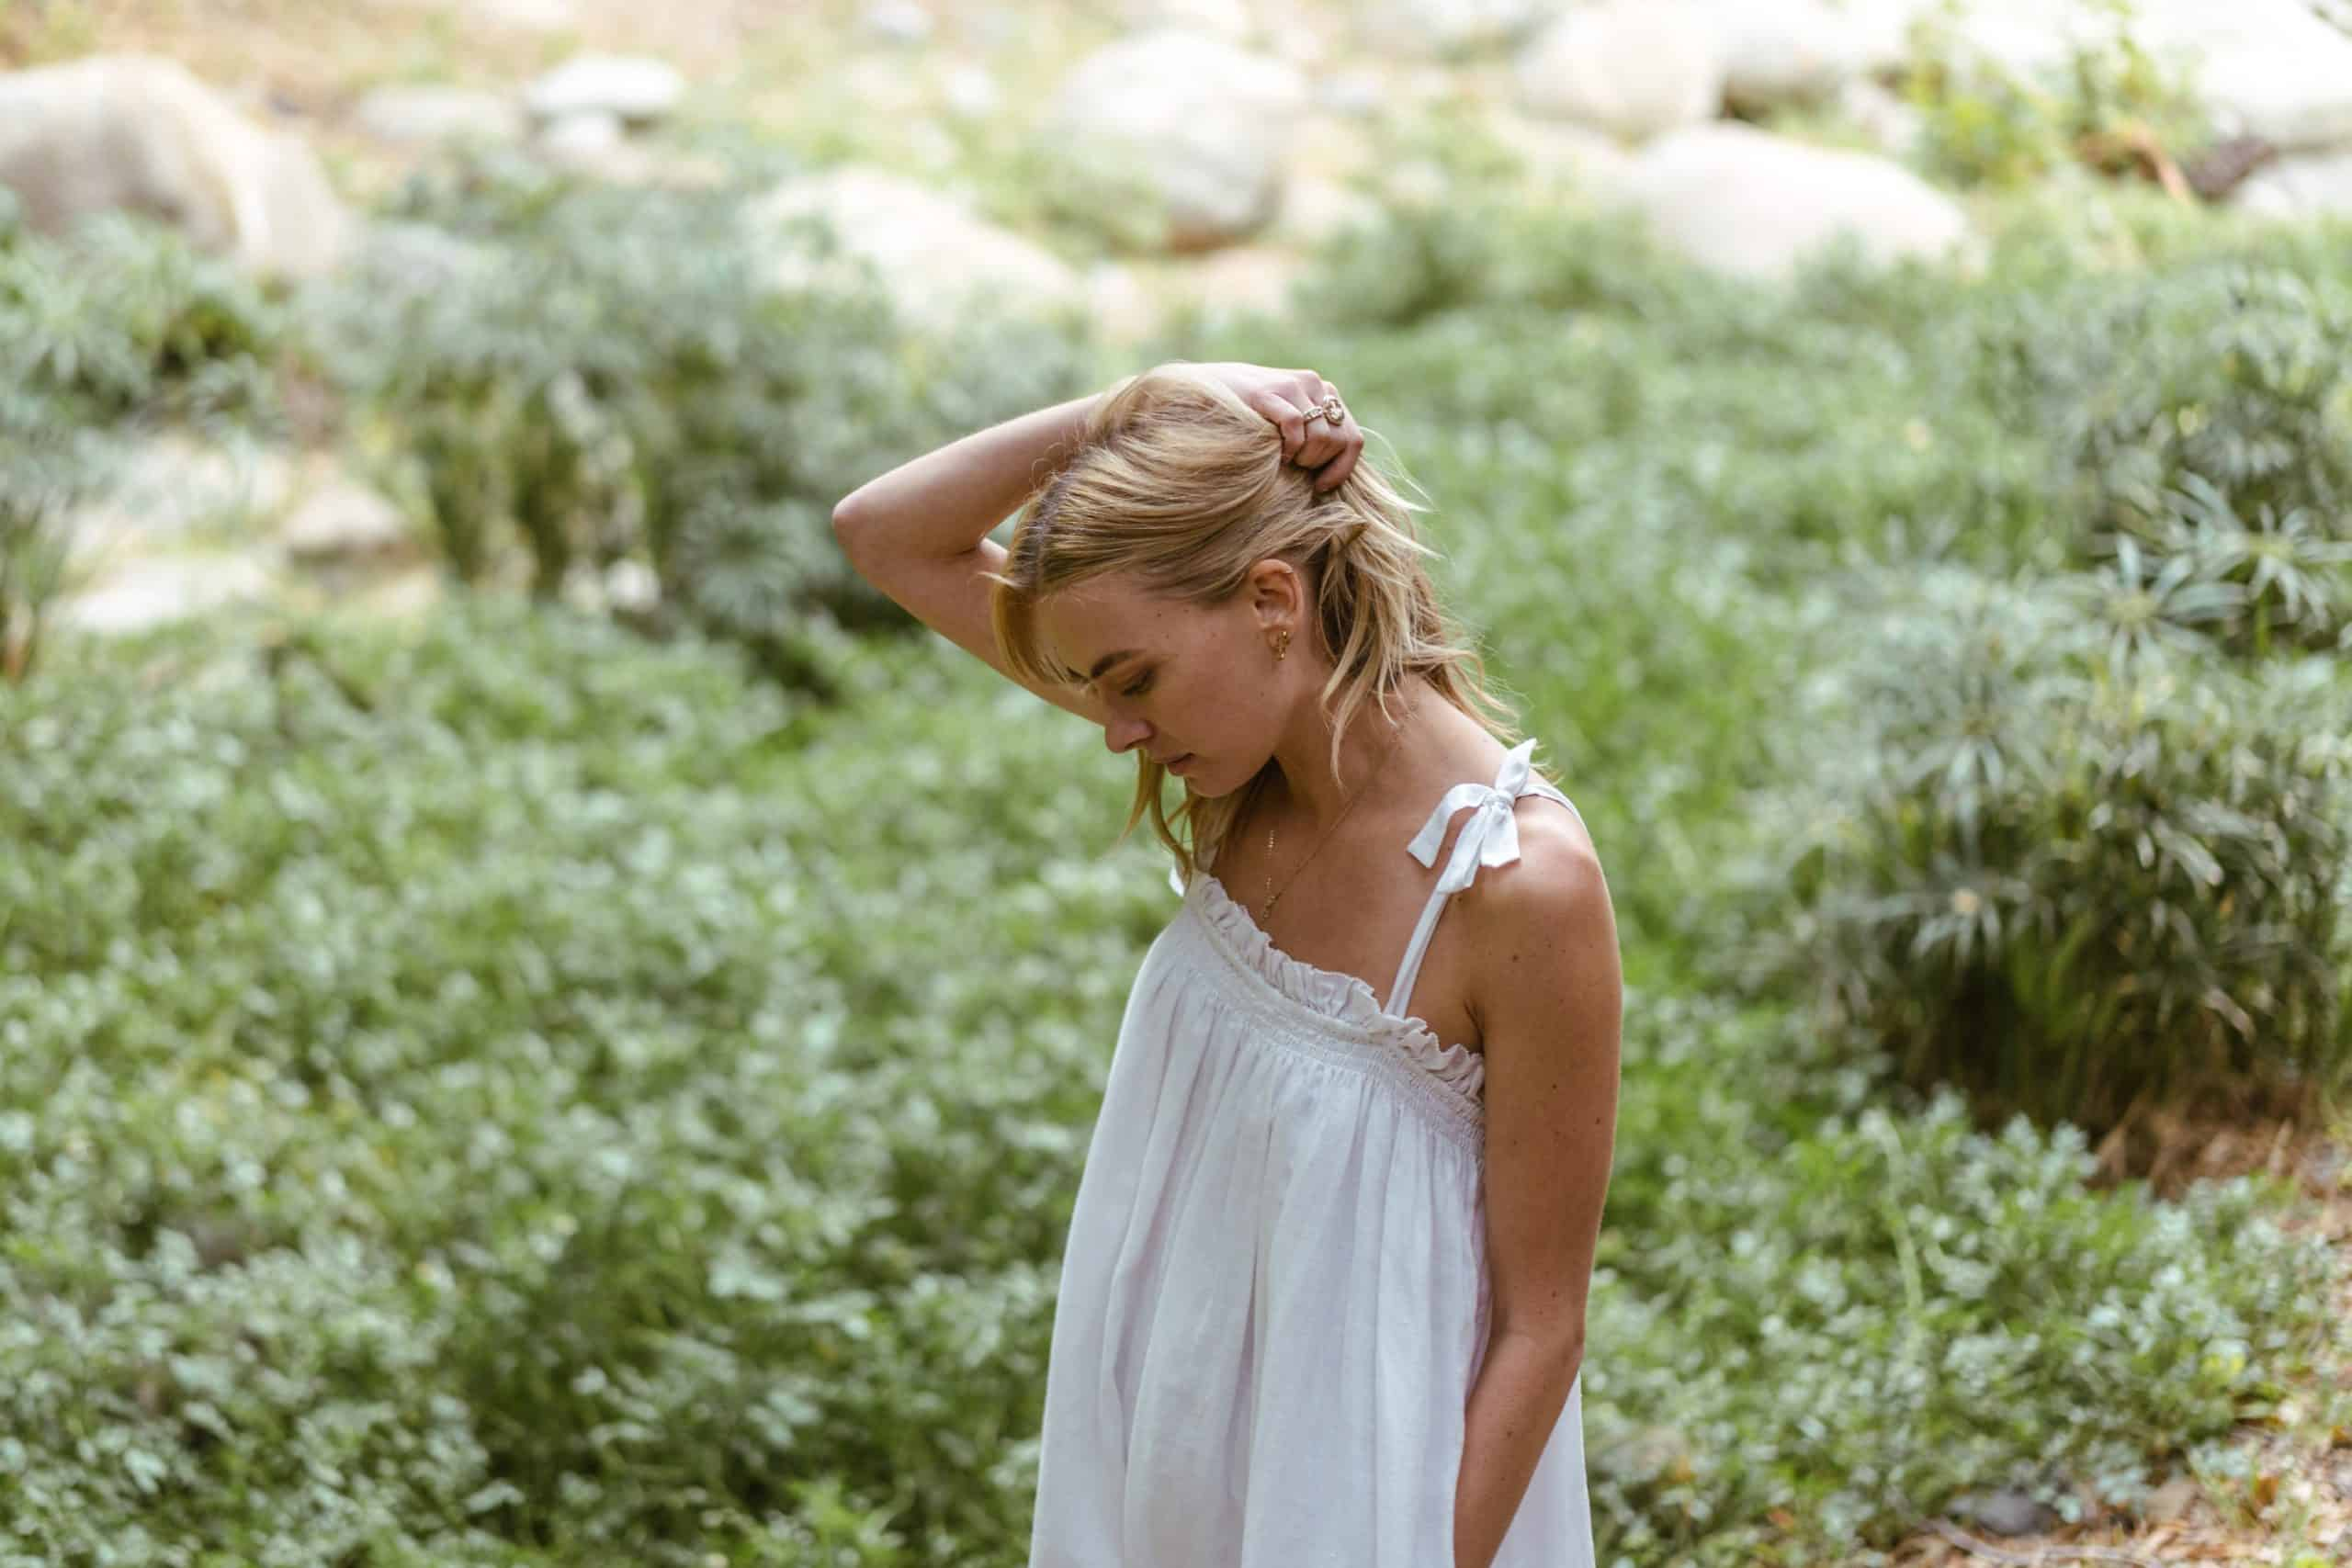 st-roche-sustainable-luxury-clothing-6